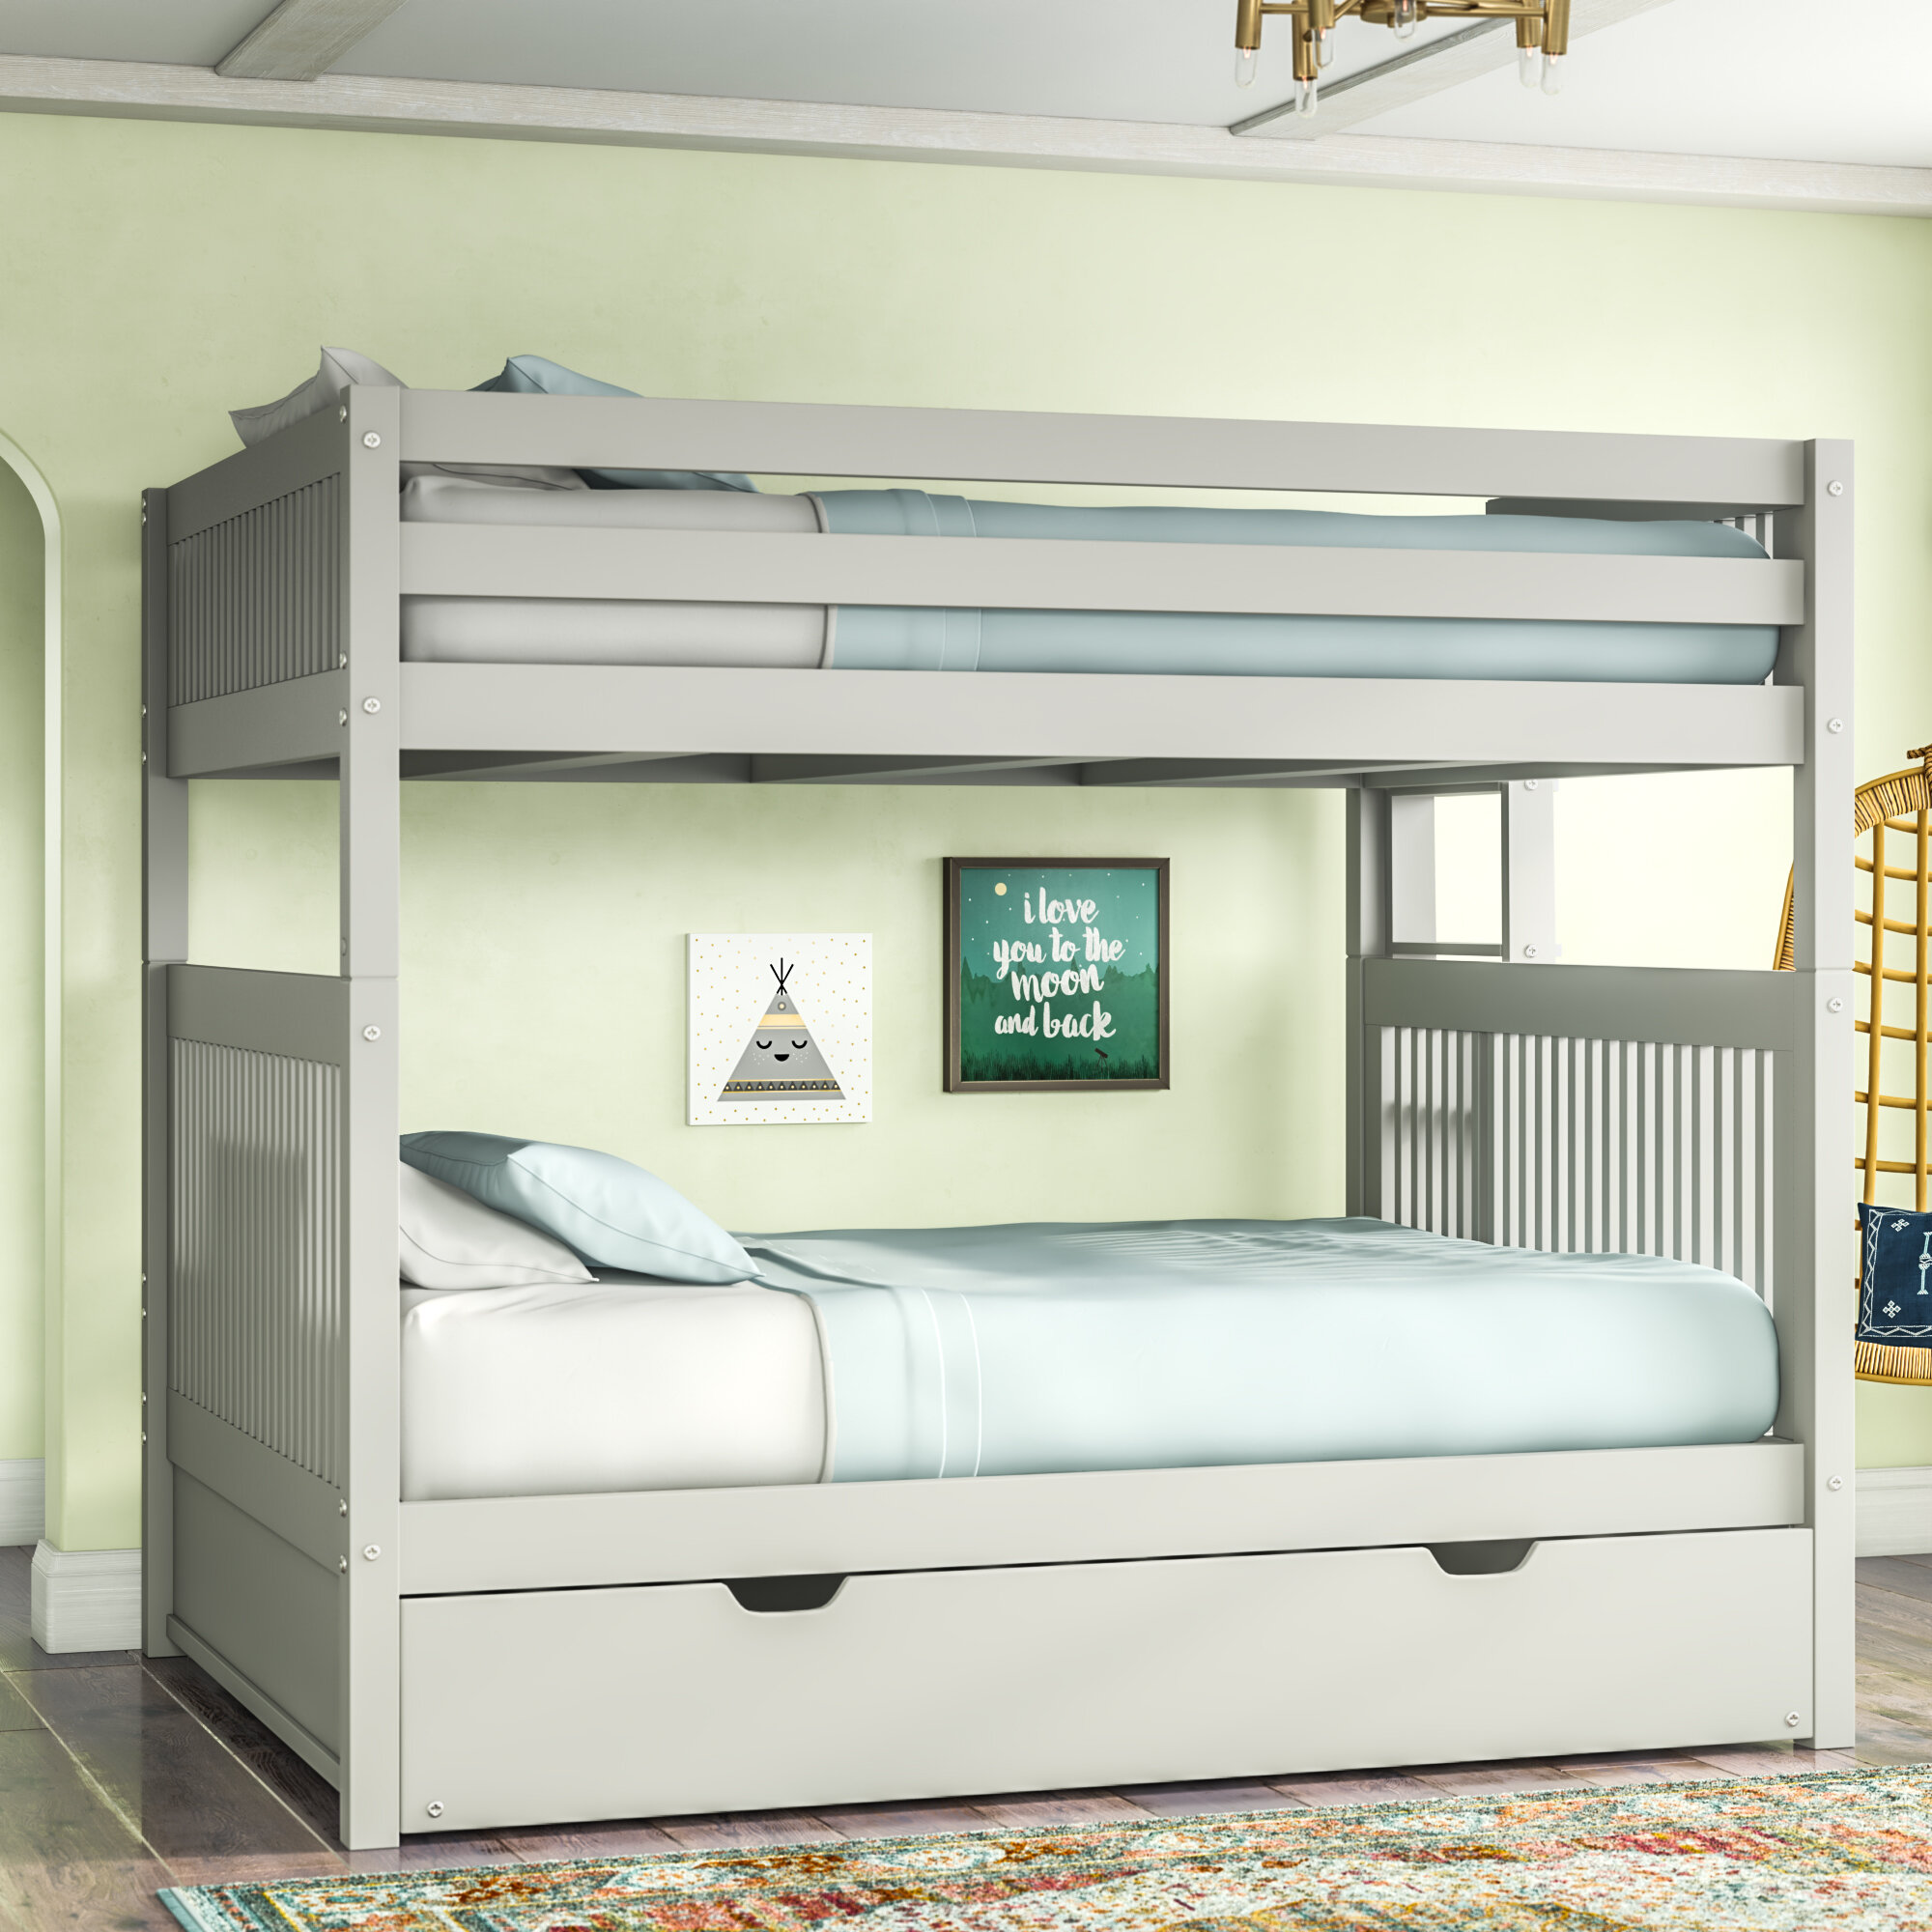 Picture of: Harriet Bee Rabon Full Over Full Bunk Bed With Trundle Reviews Wayfair